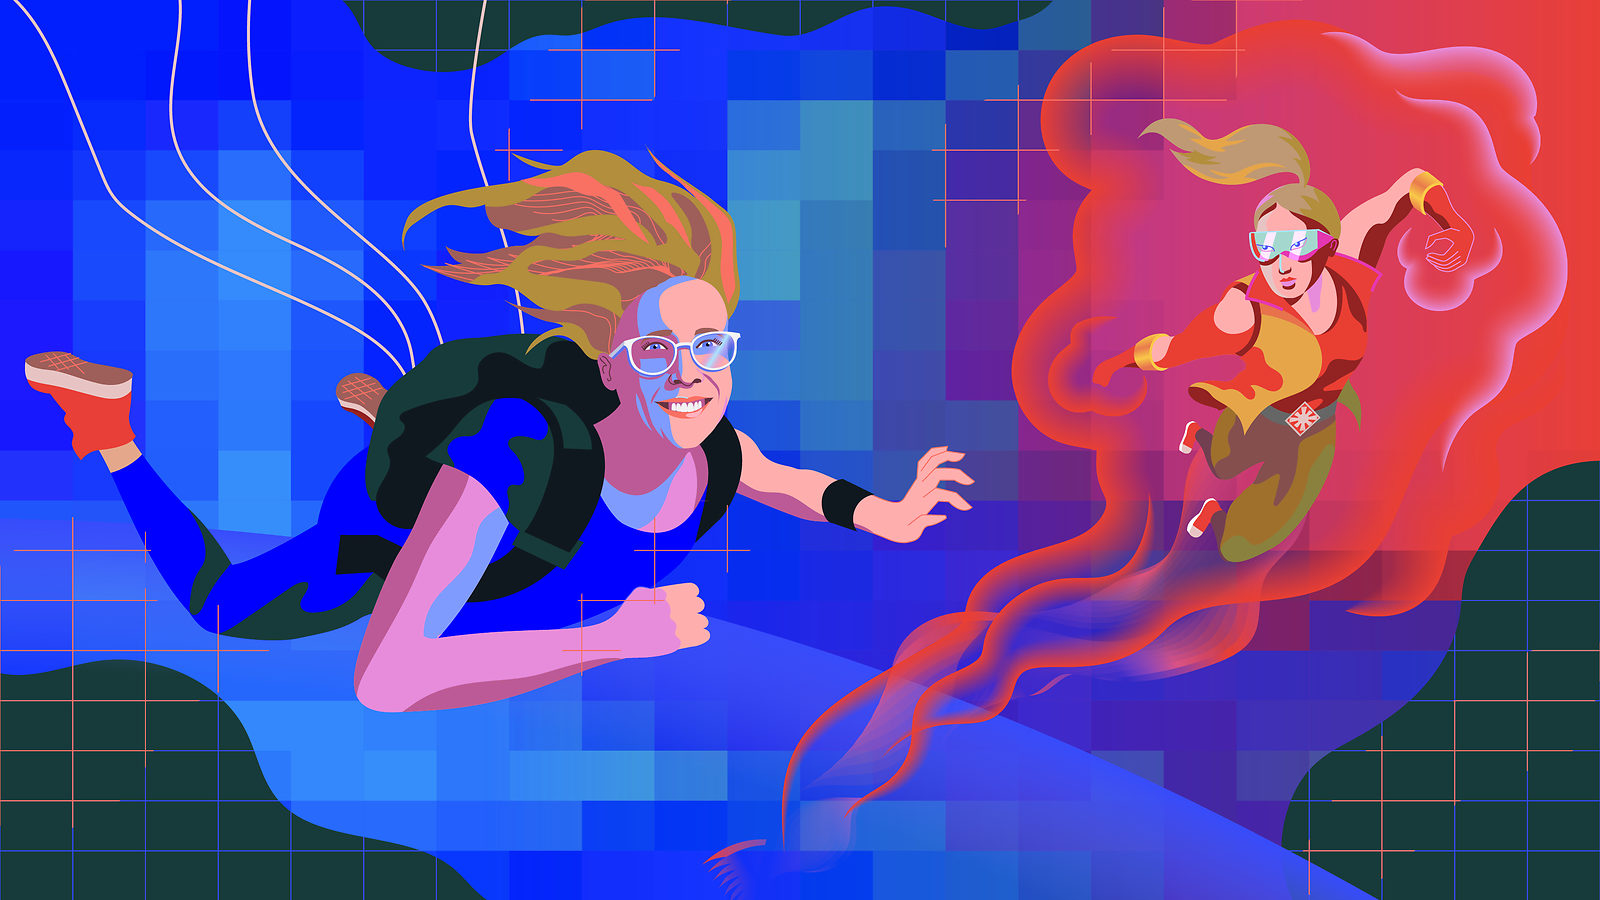 An illustration of Becky Thompson skydiving next to Spectra